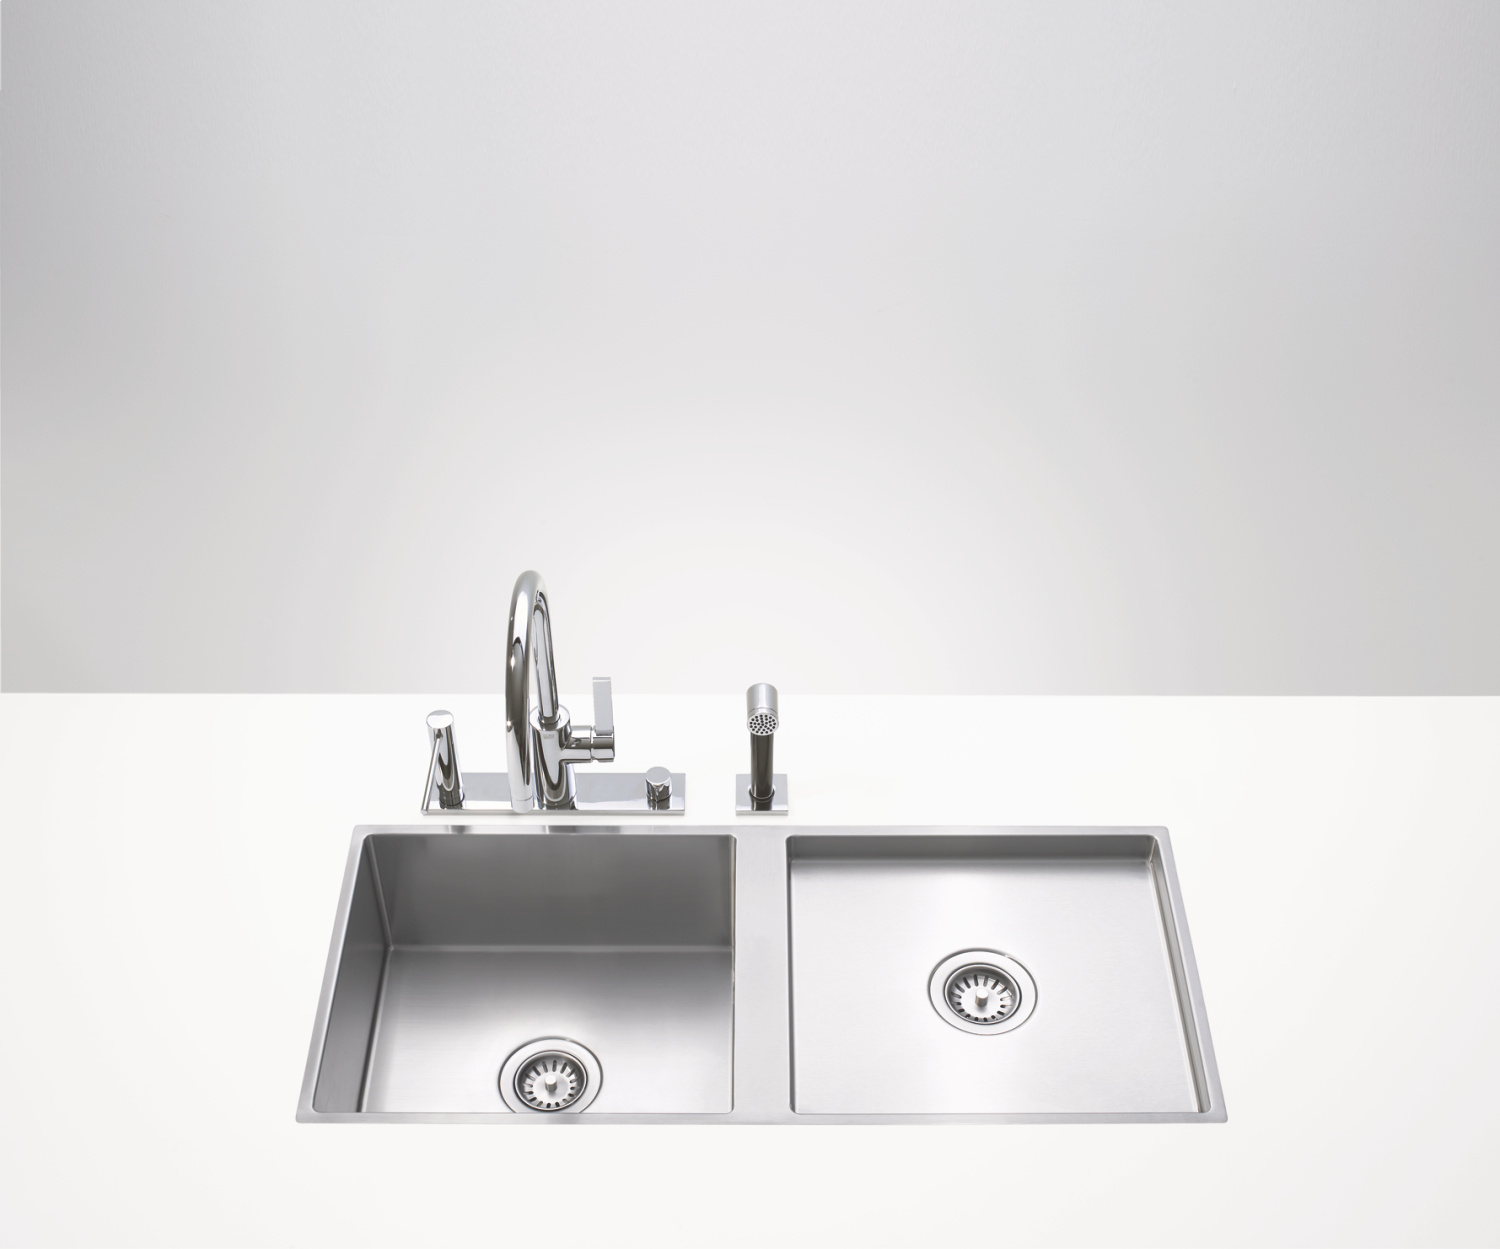 Double sink - matt high-grade steel